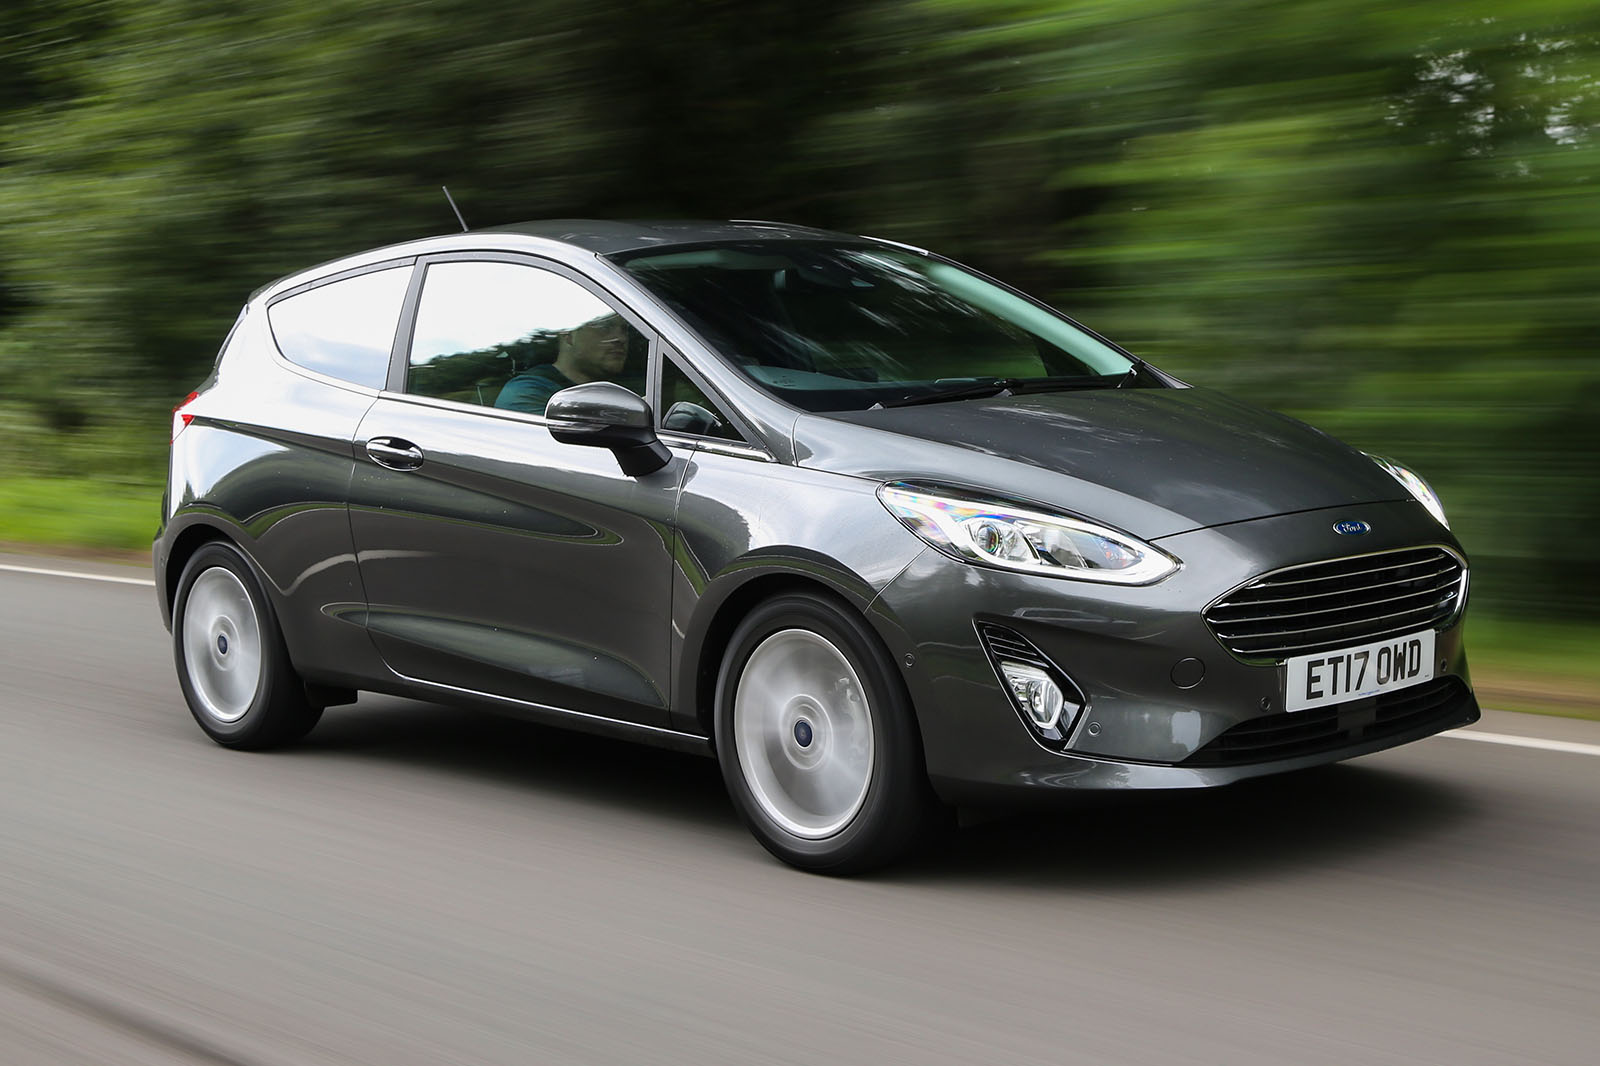 The Best Selling Cars in the UK